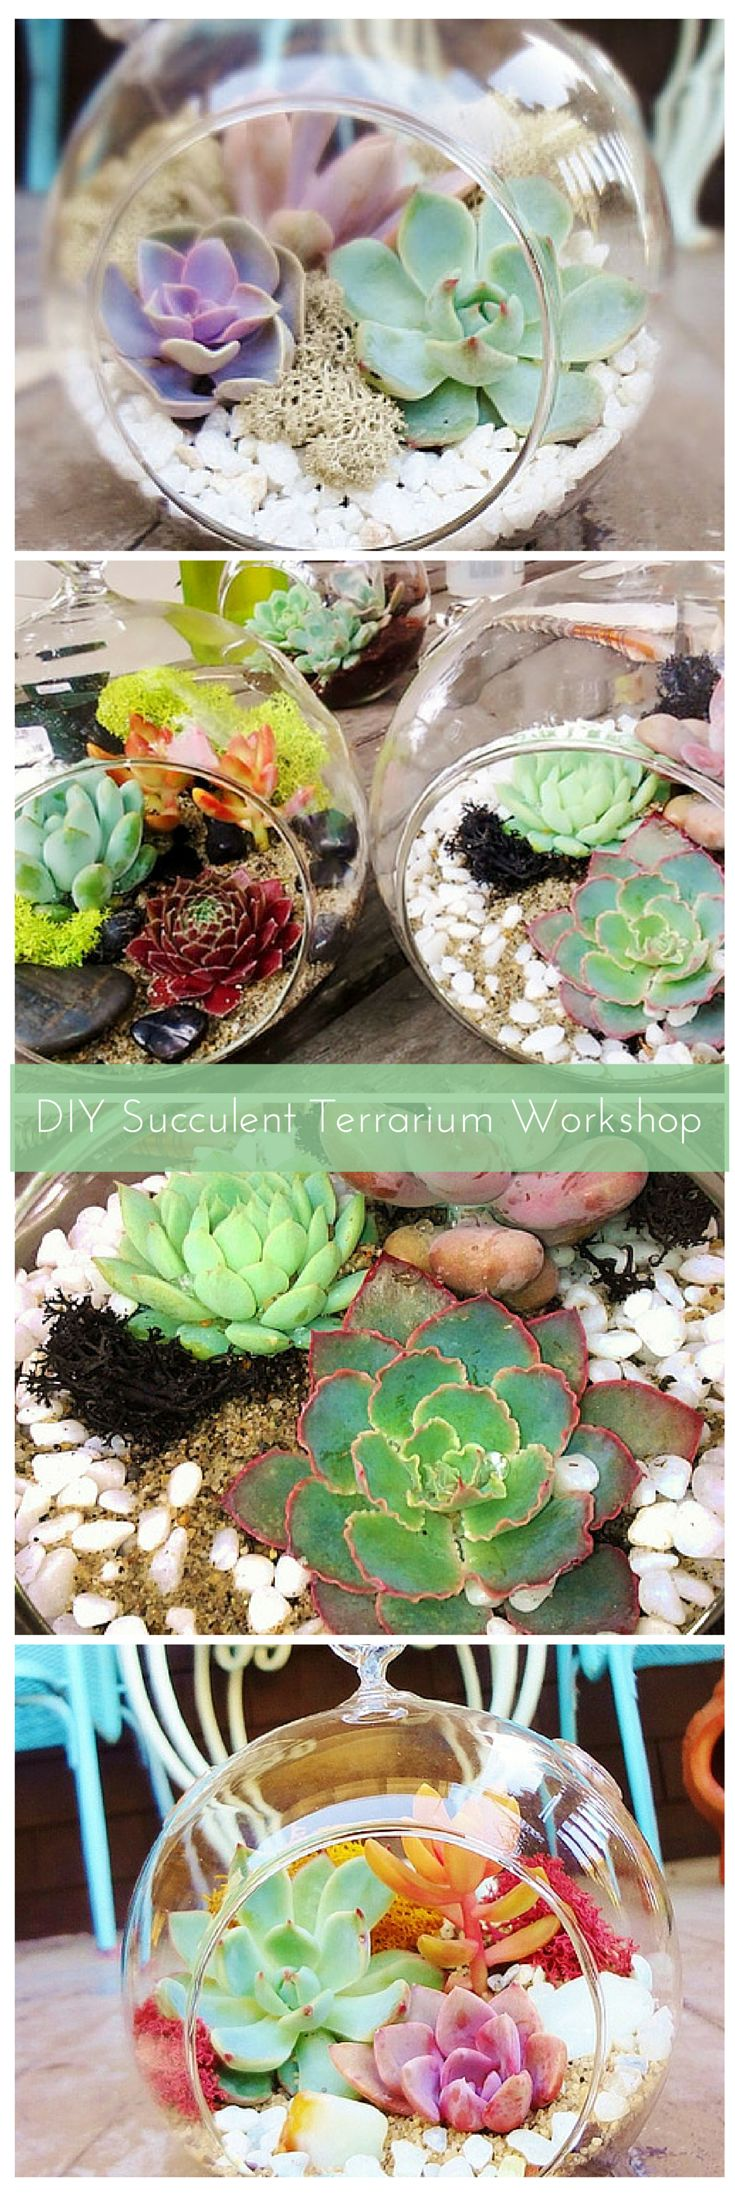 Get your hands dirty while learning all about how to Design with and care for #Succulents! DIY Terrariums in SanFrancisco